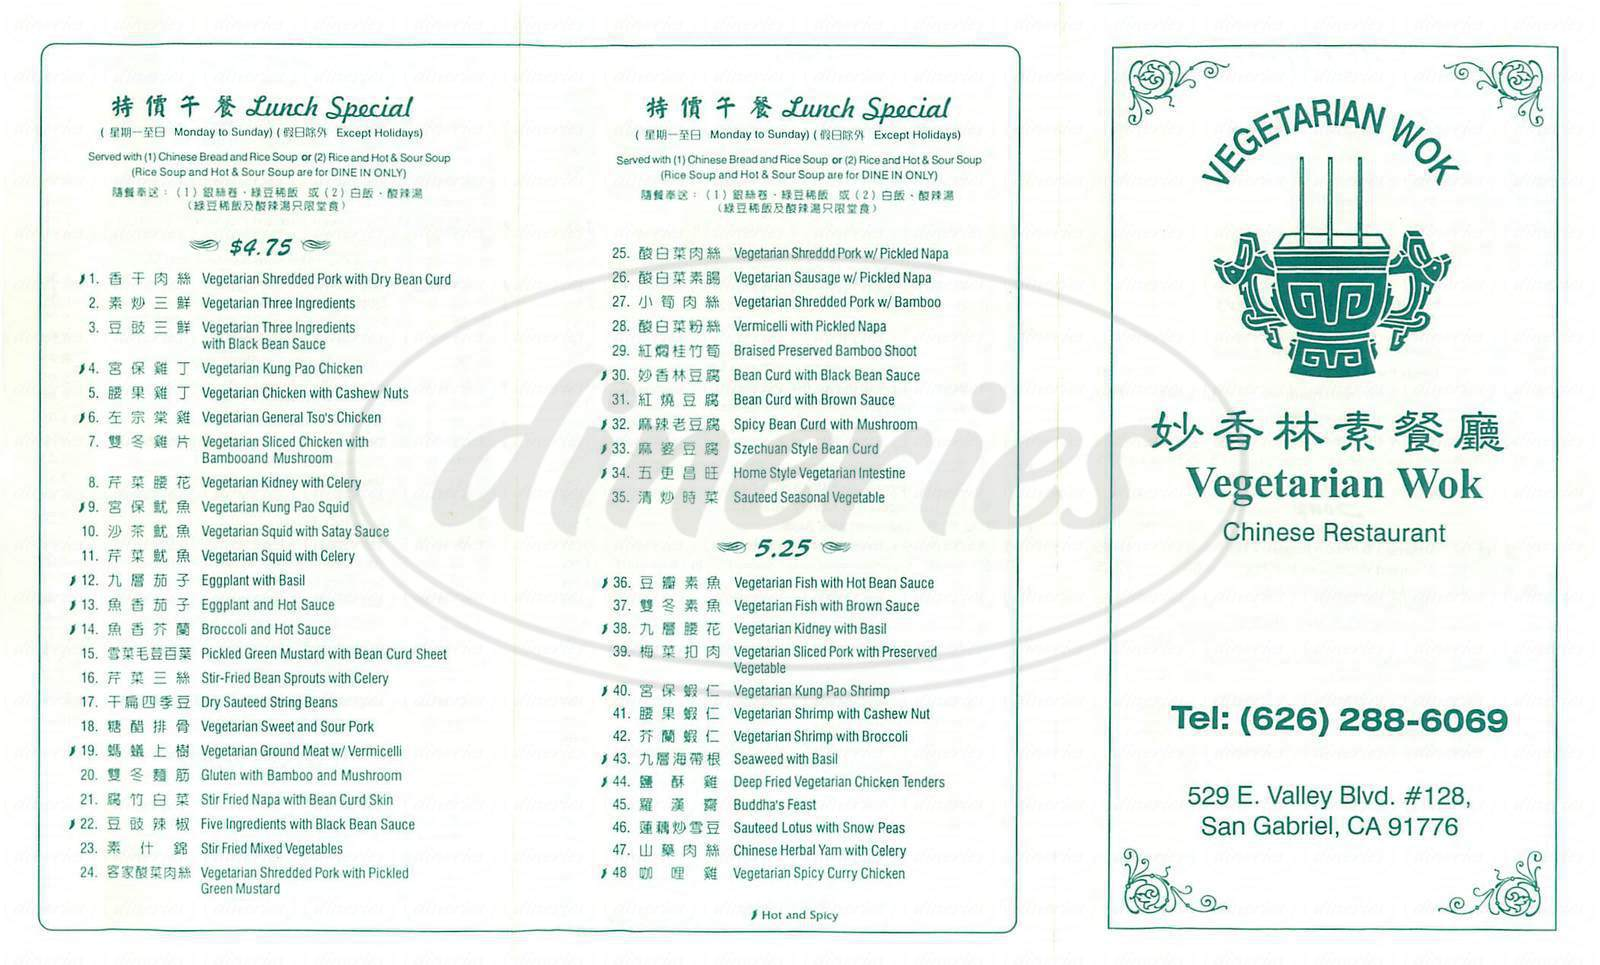 menu for Vegetarian Wok